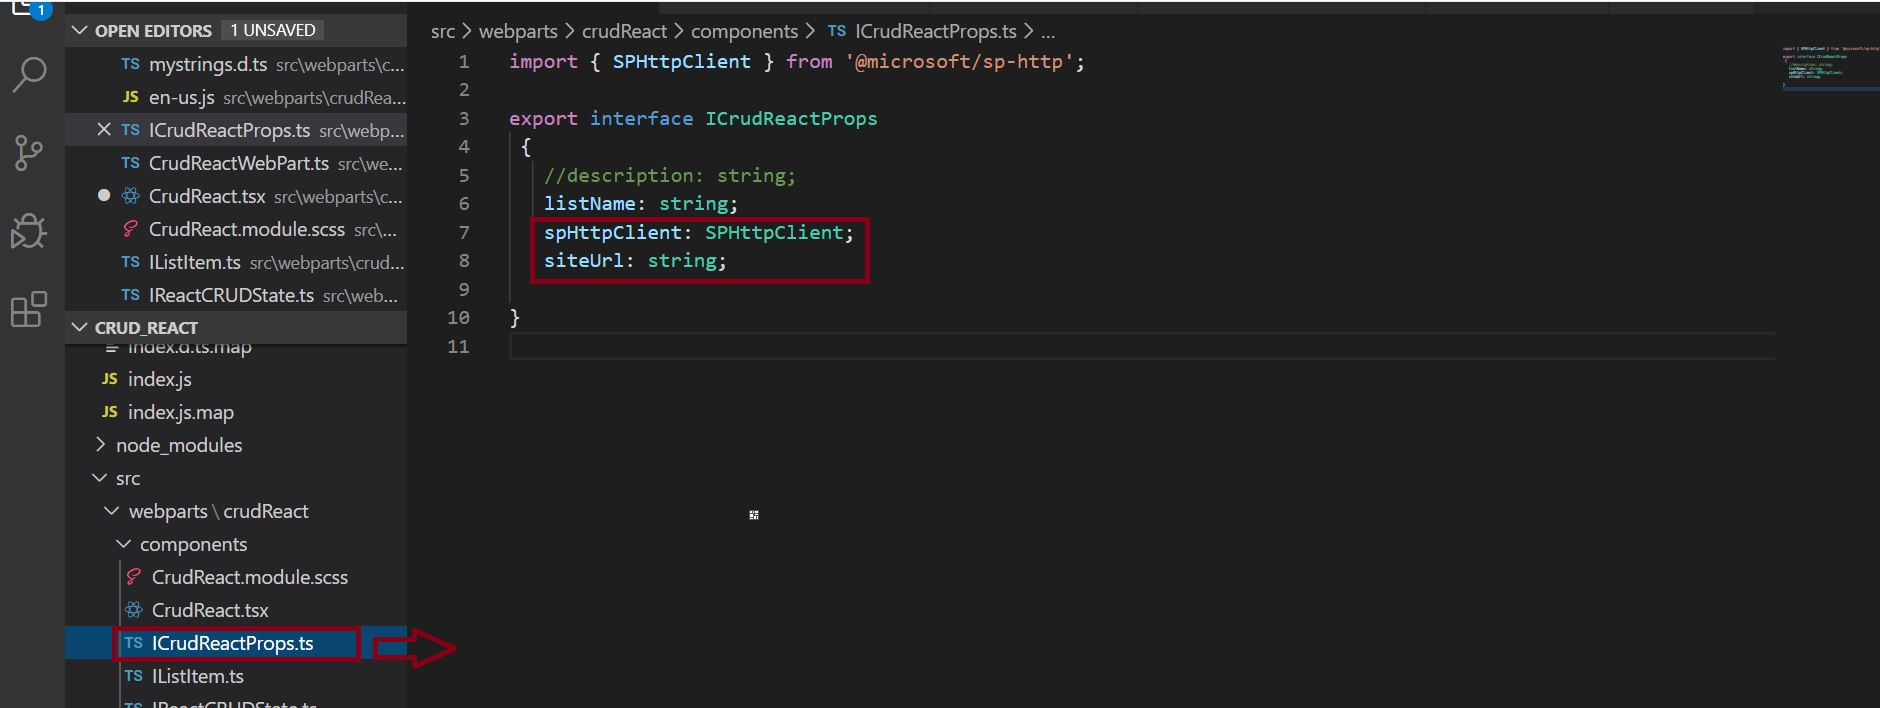 Configure Site URL and spHttpClient property in ICrudReactProps.ts file